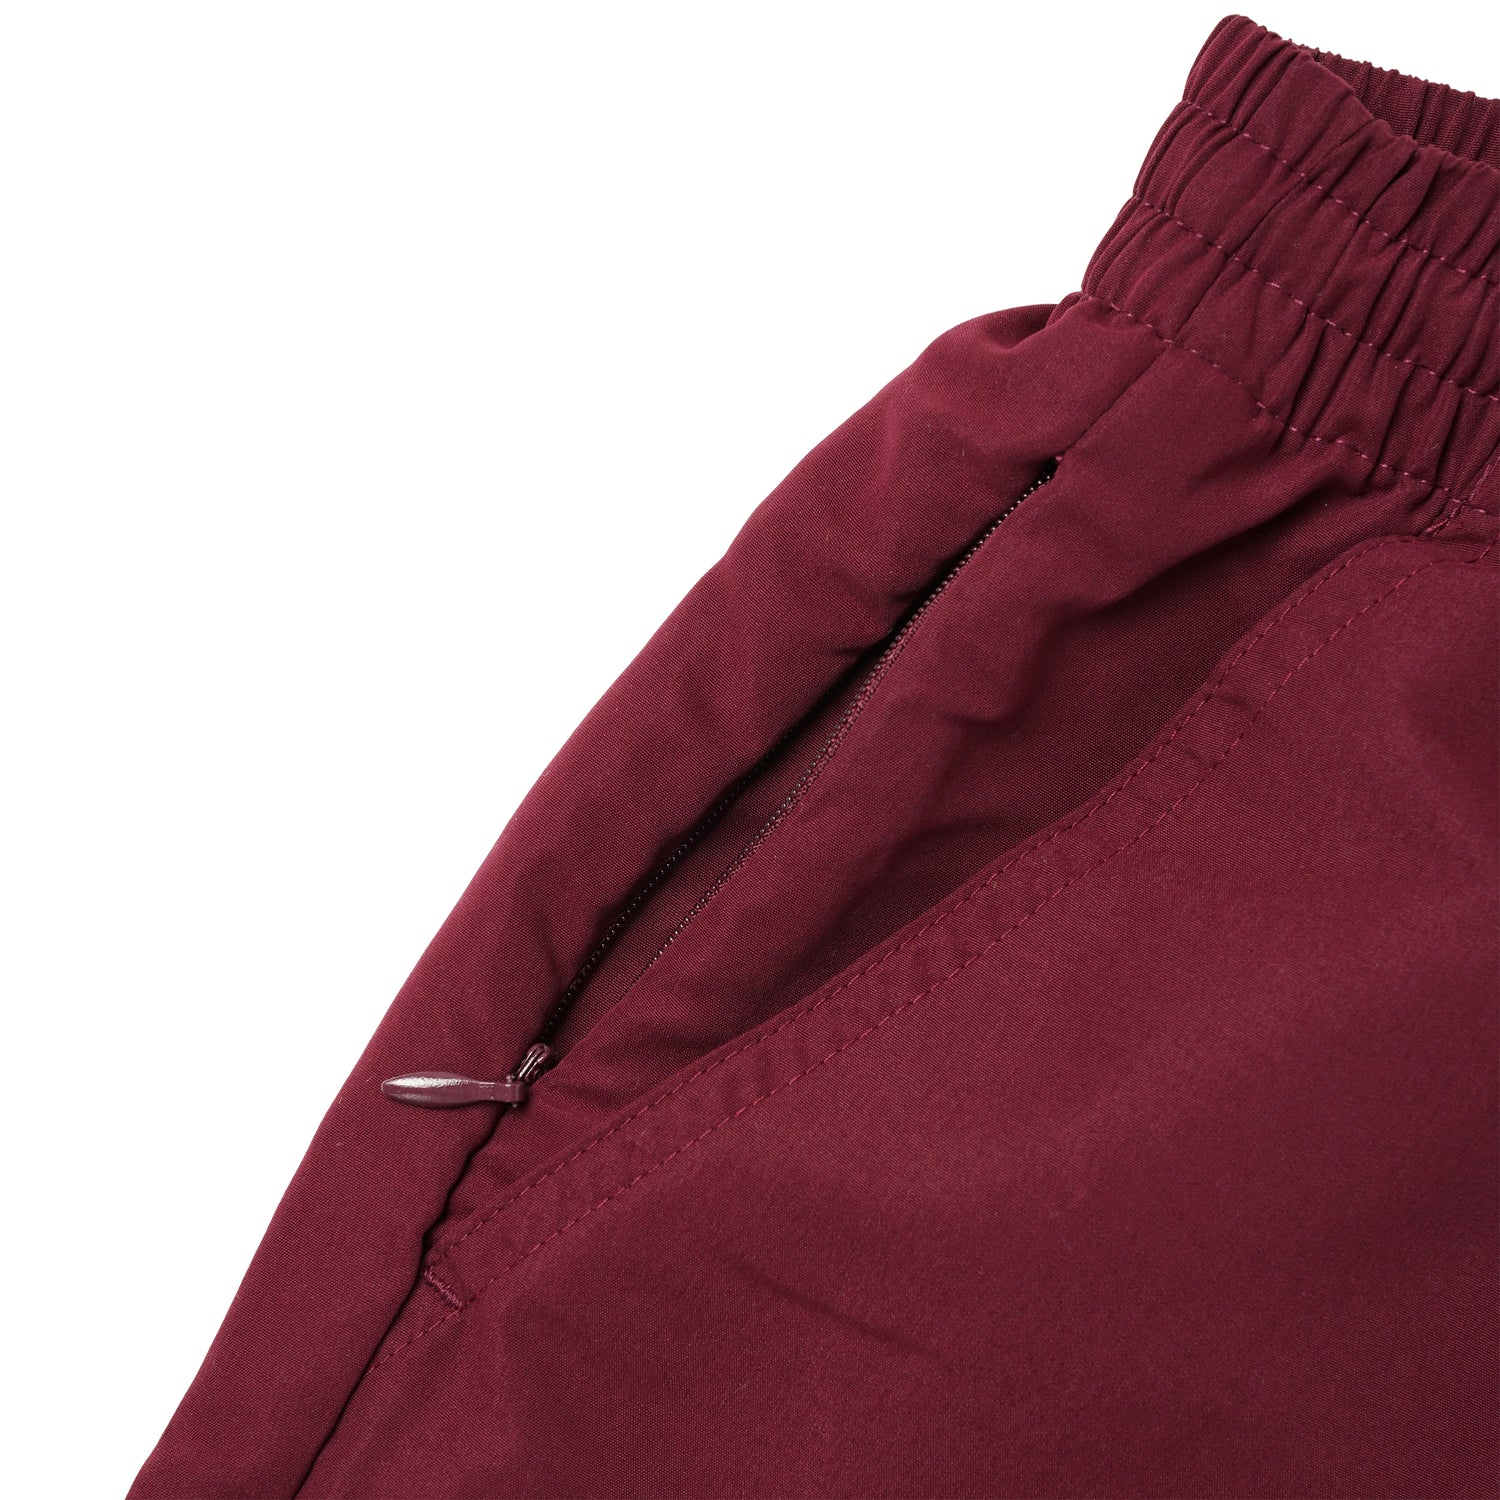 Warped Check Shorts, Maroon